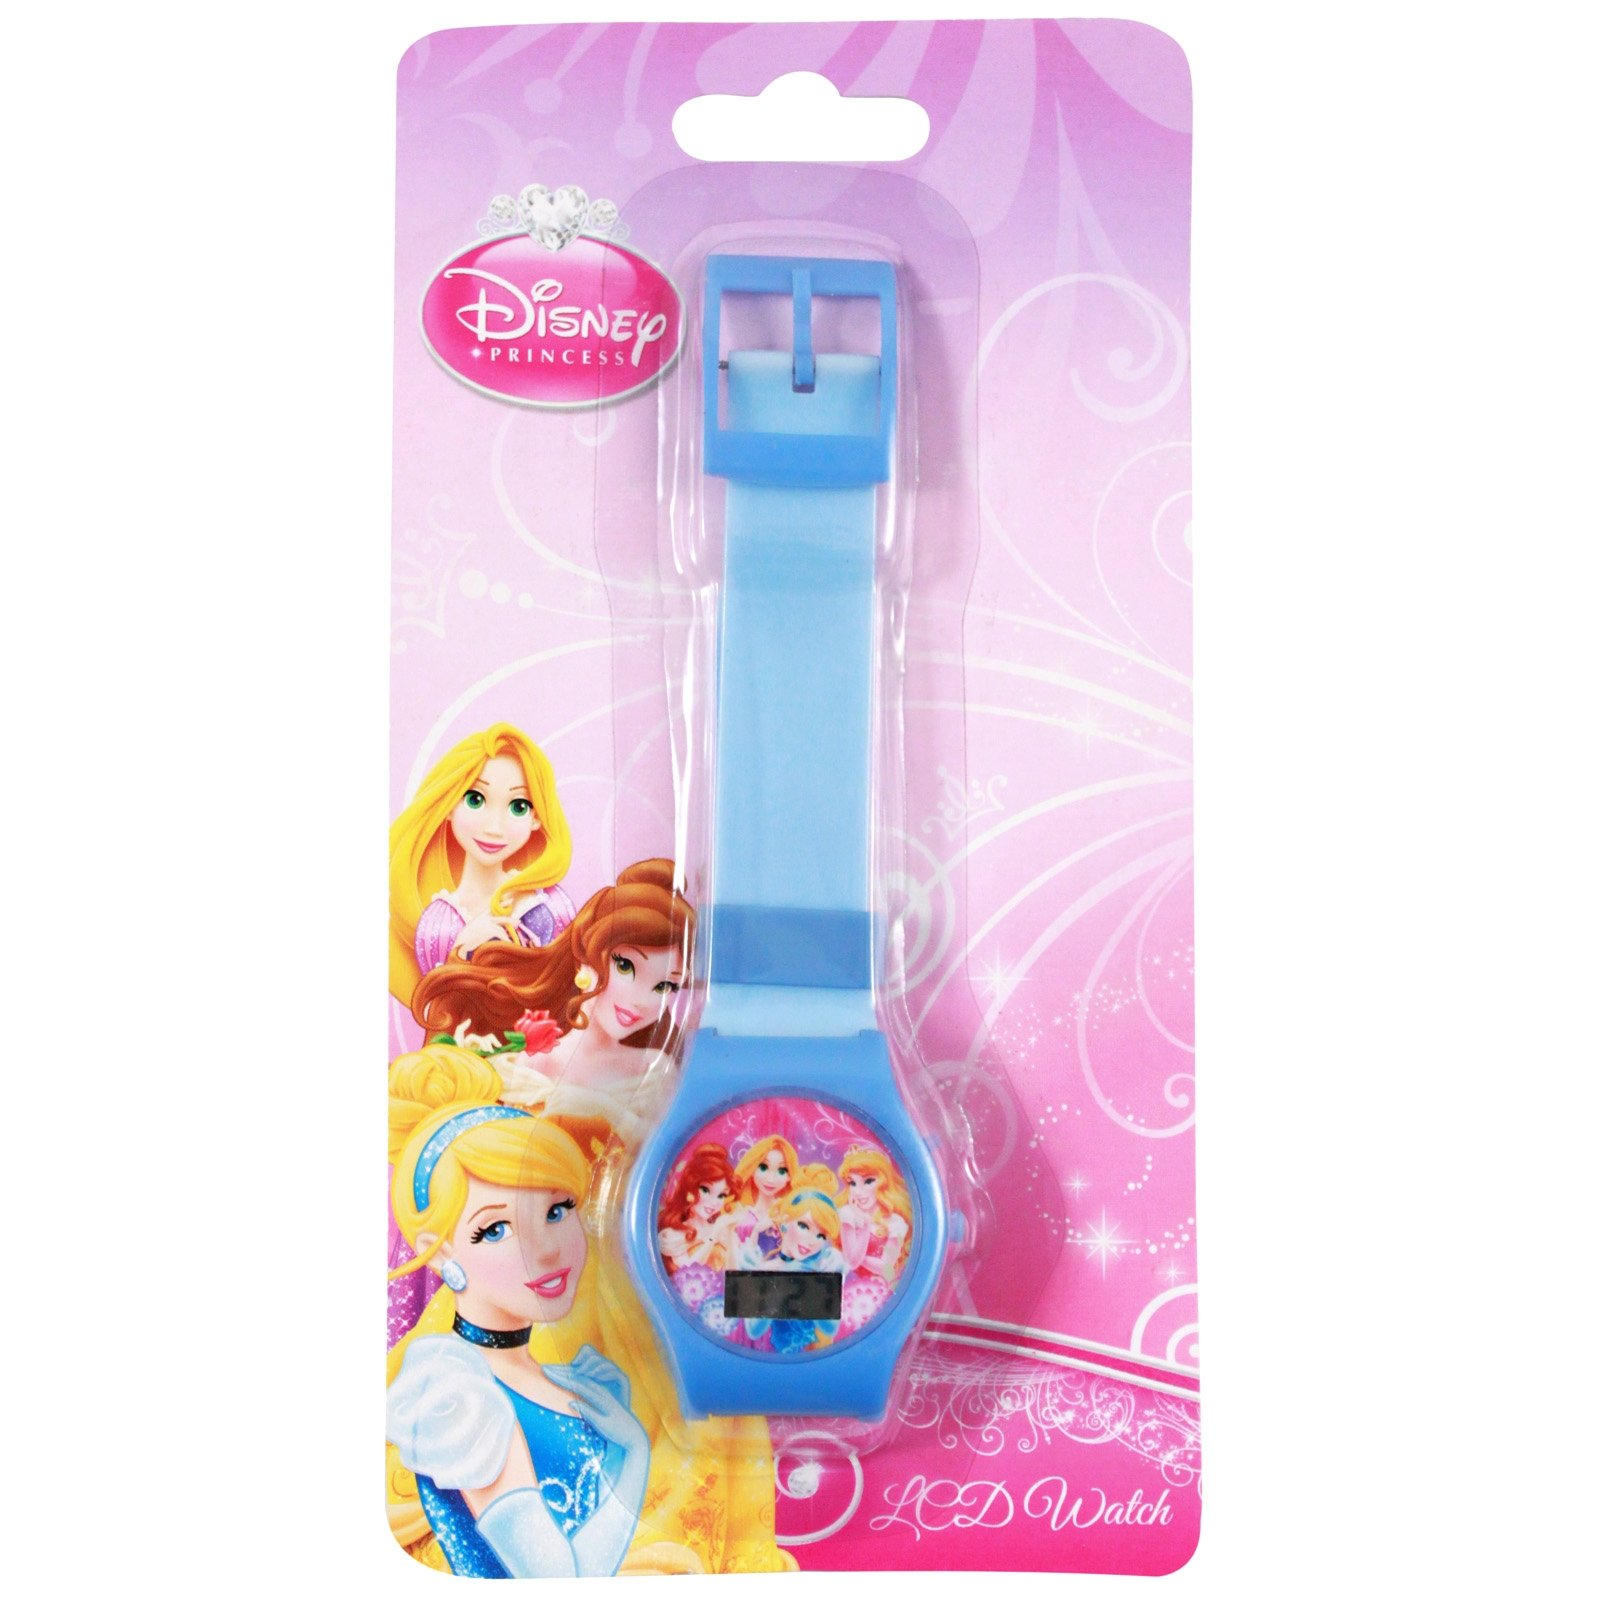 disney princess childrens wrist watch digital quartz adjustable blue belle ariel aurora cinderella snow white rapunzel